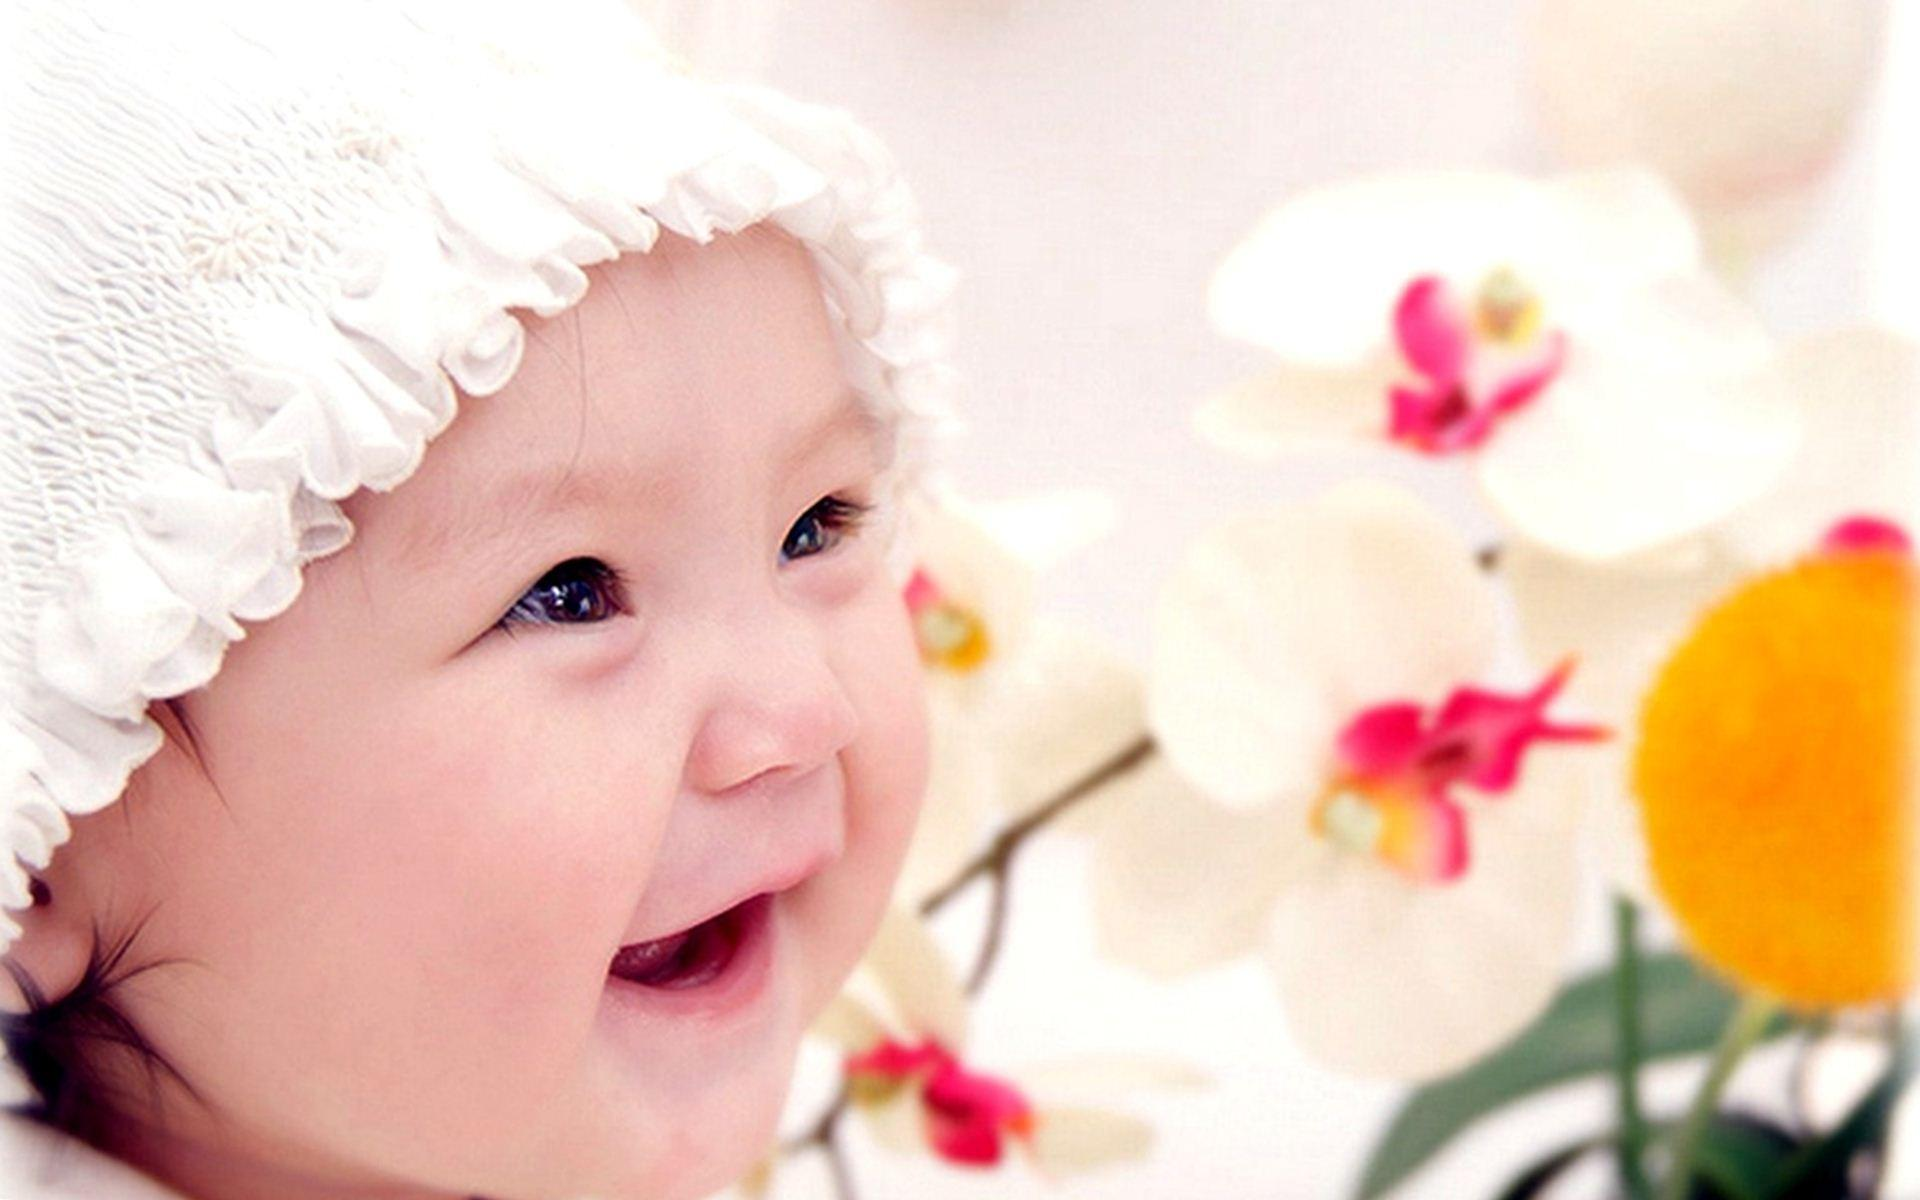 Beautiful Wallpapers Of Babies Wallpaper Cave